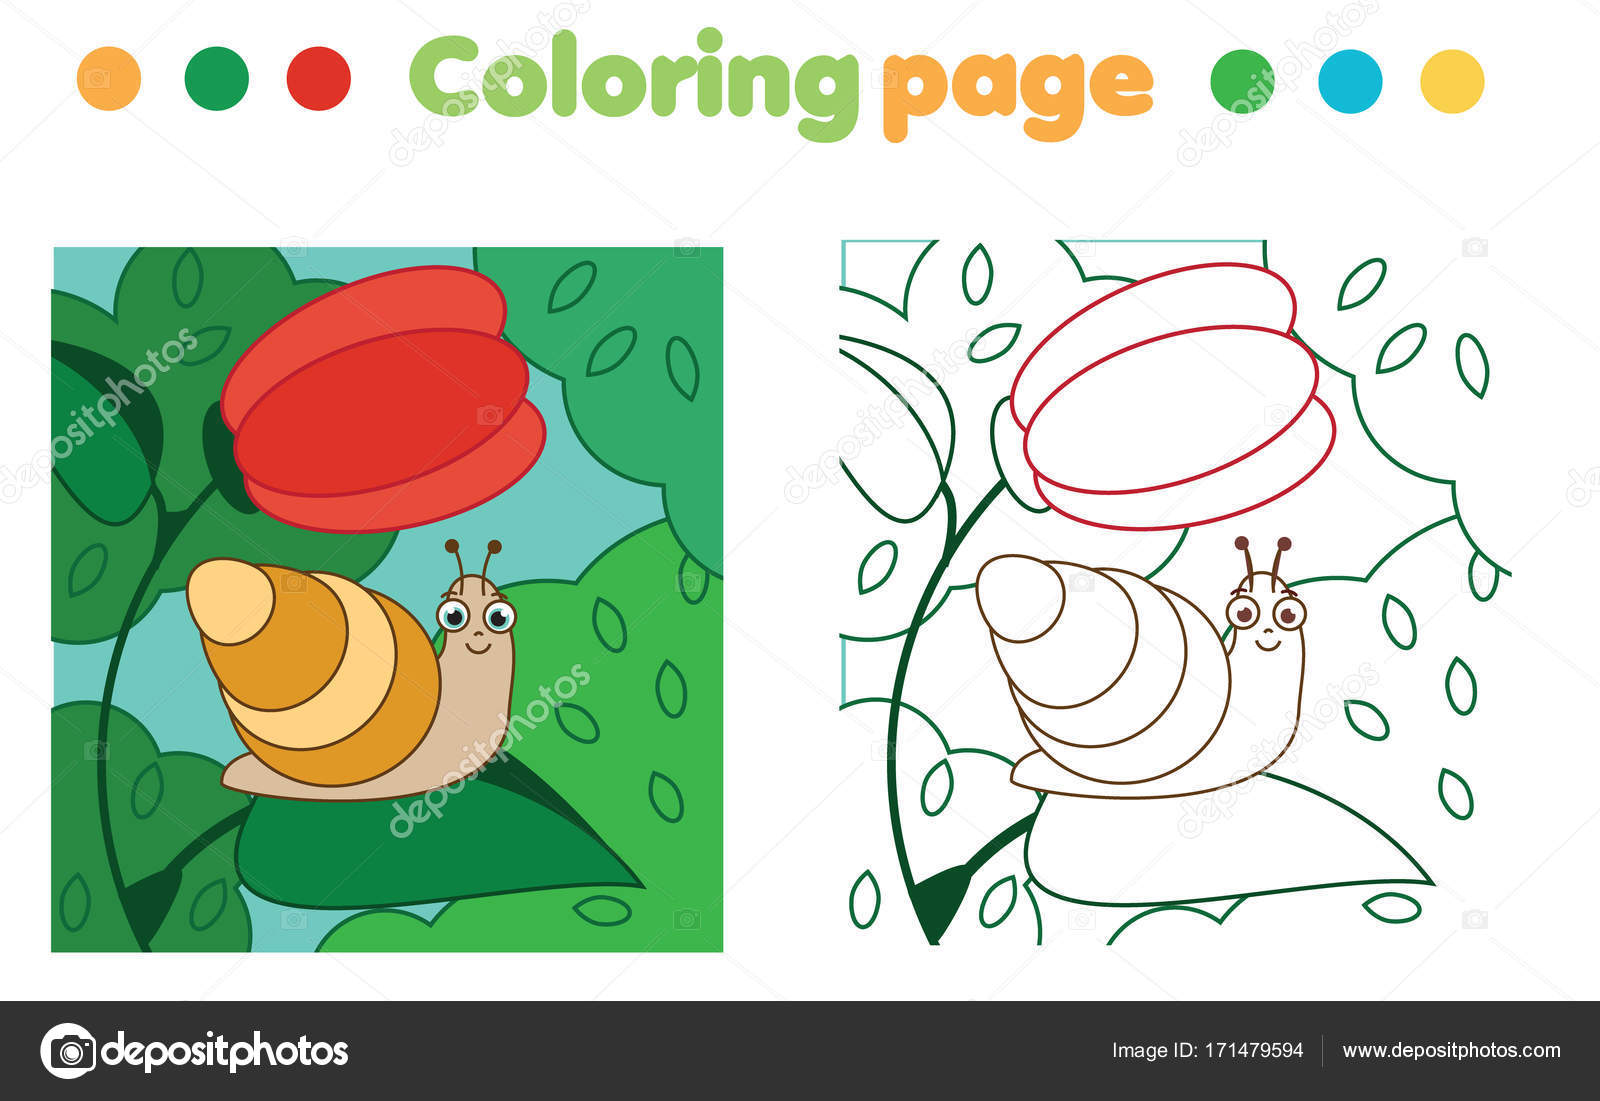 Coloring Page Snail Flower Color Picture Educational Children Game